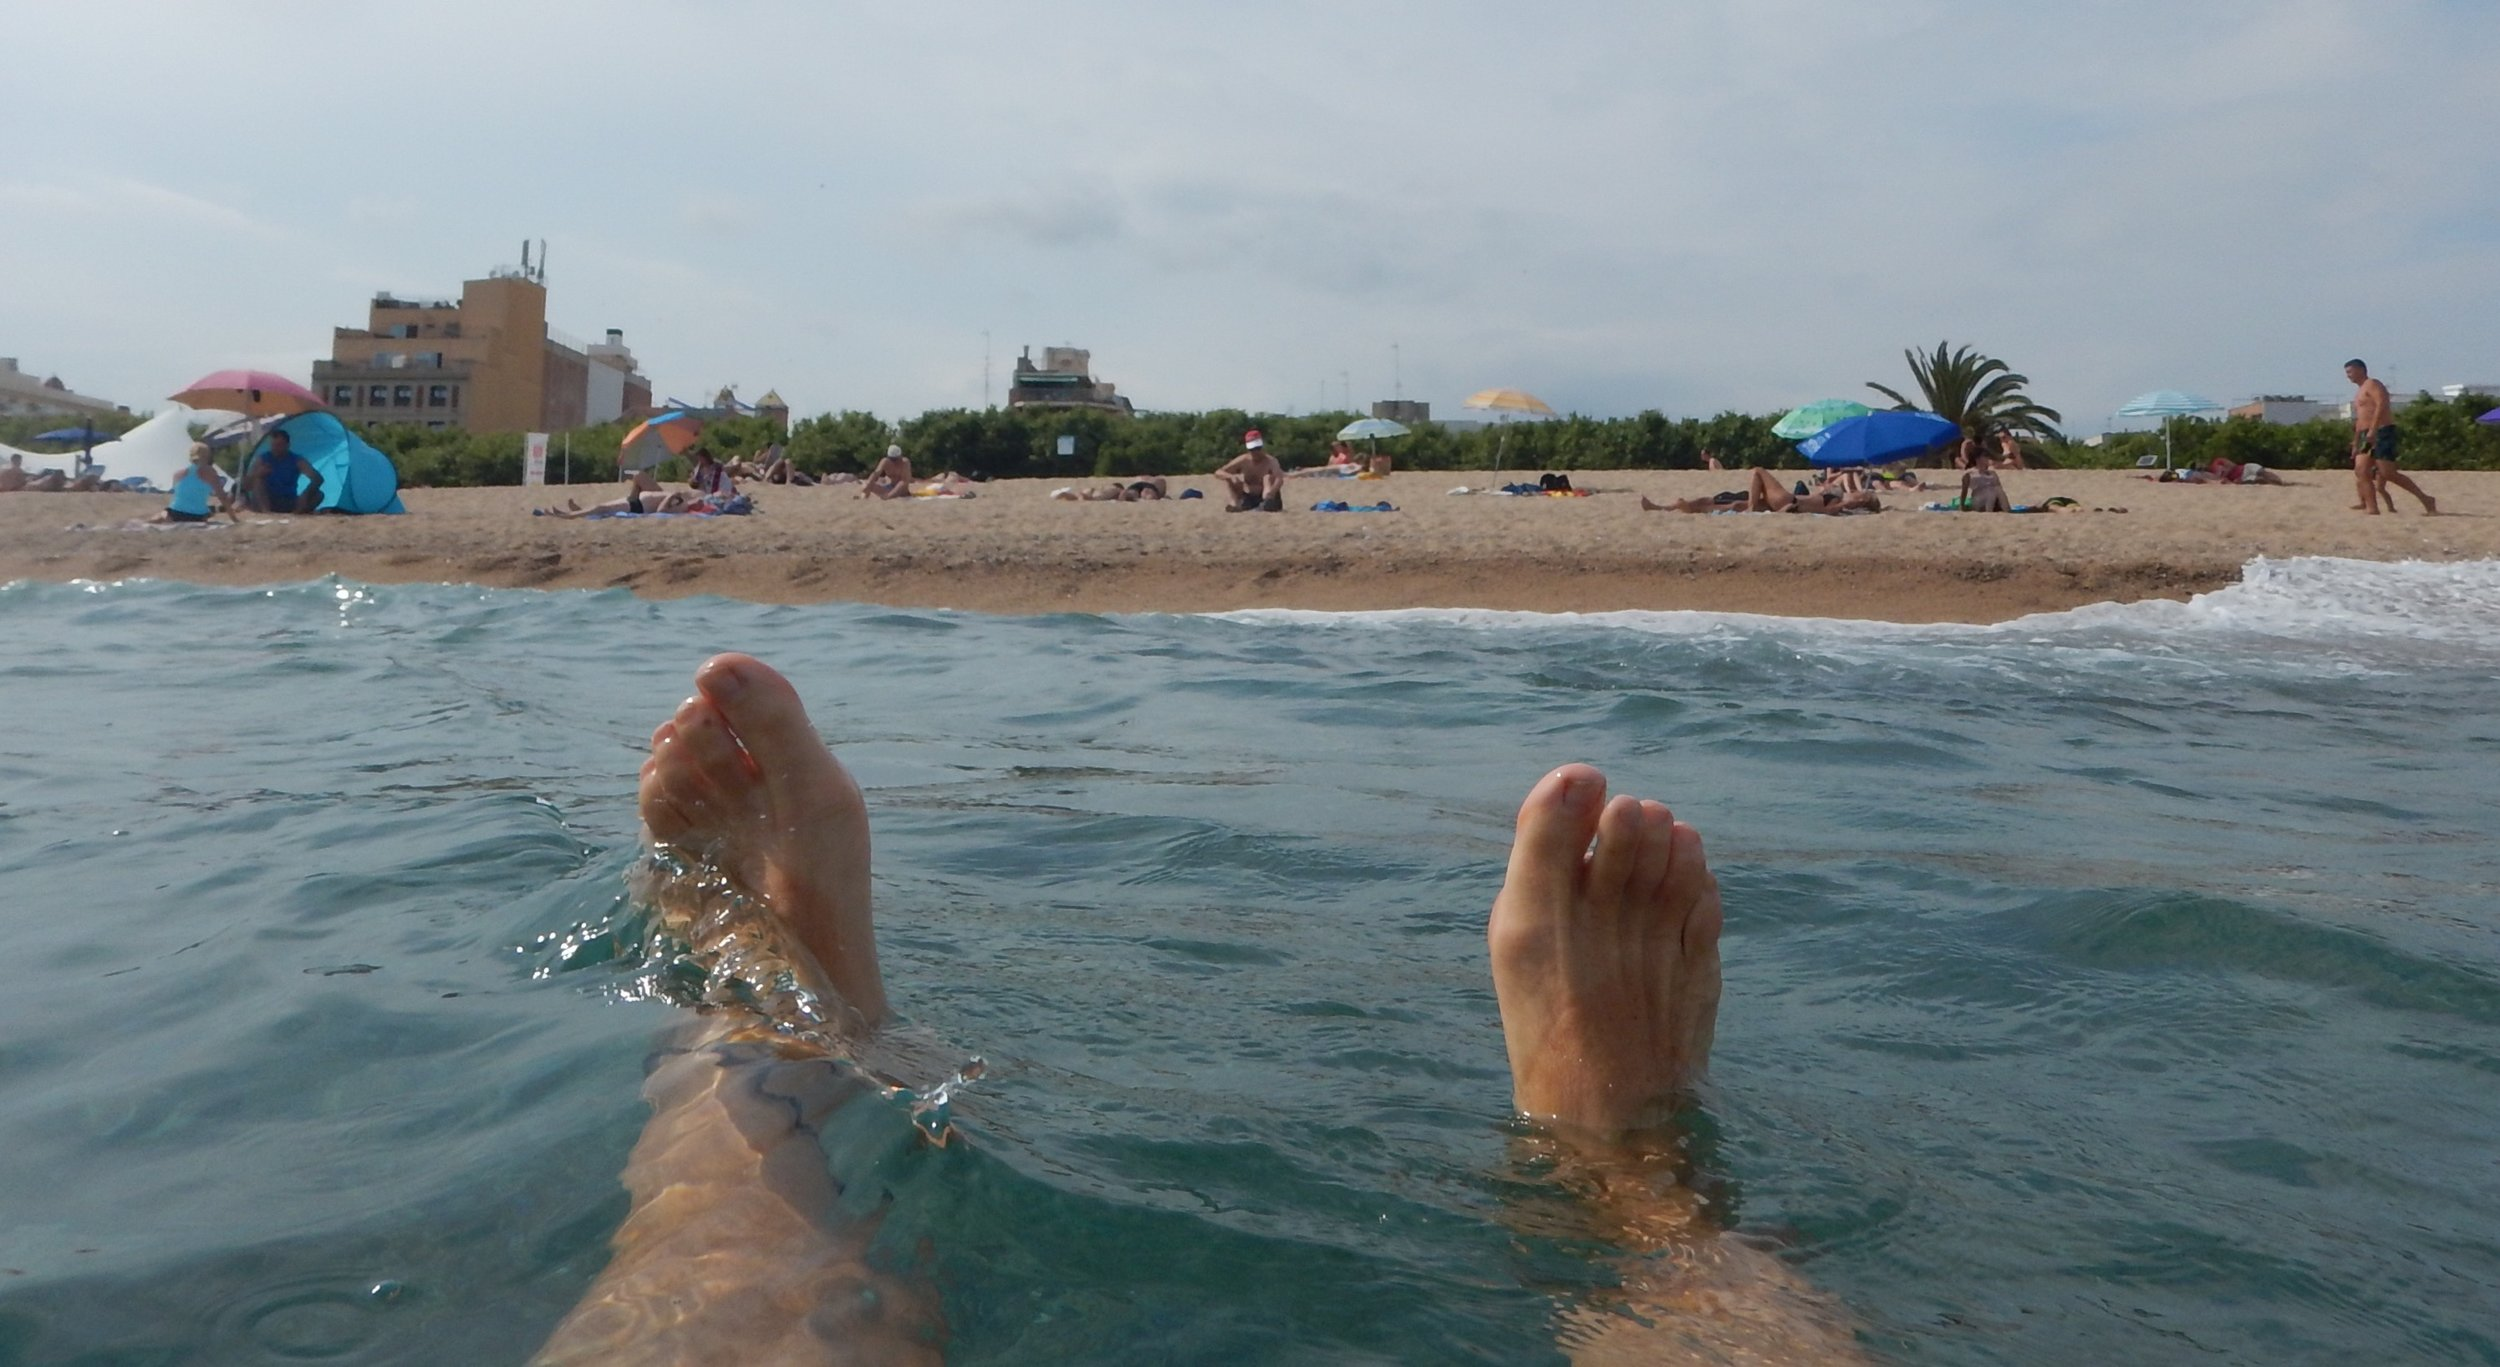 Then back to the hotel and short walk to the beach for a swim in the Mediterranean..